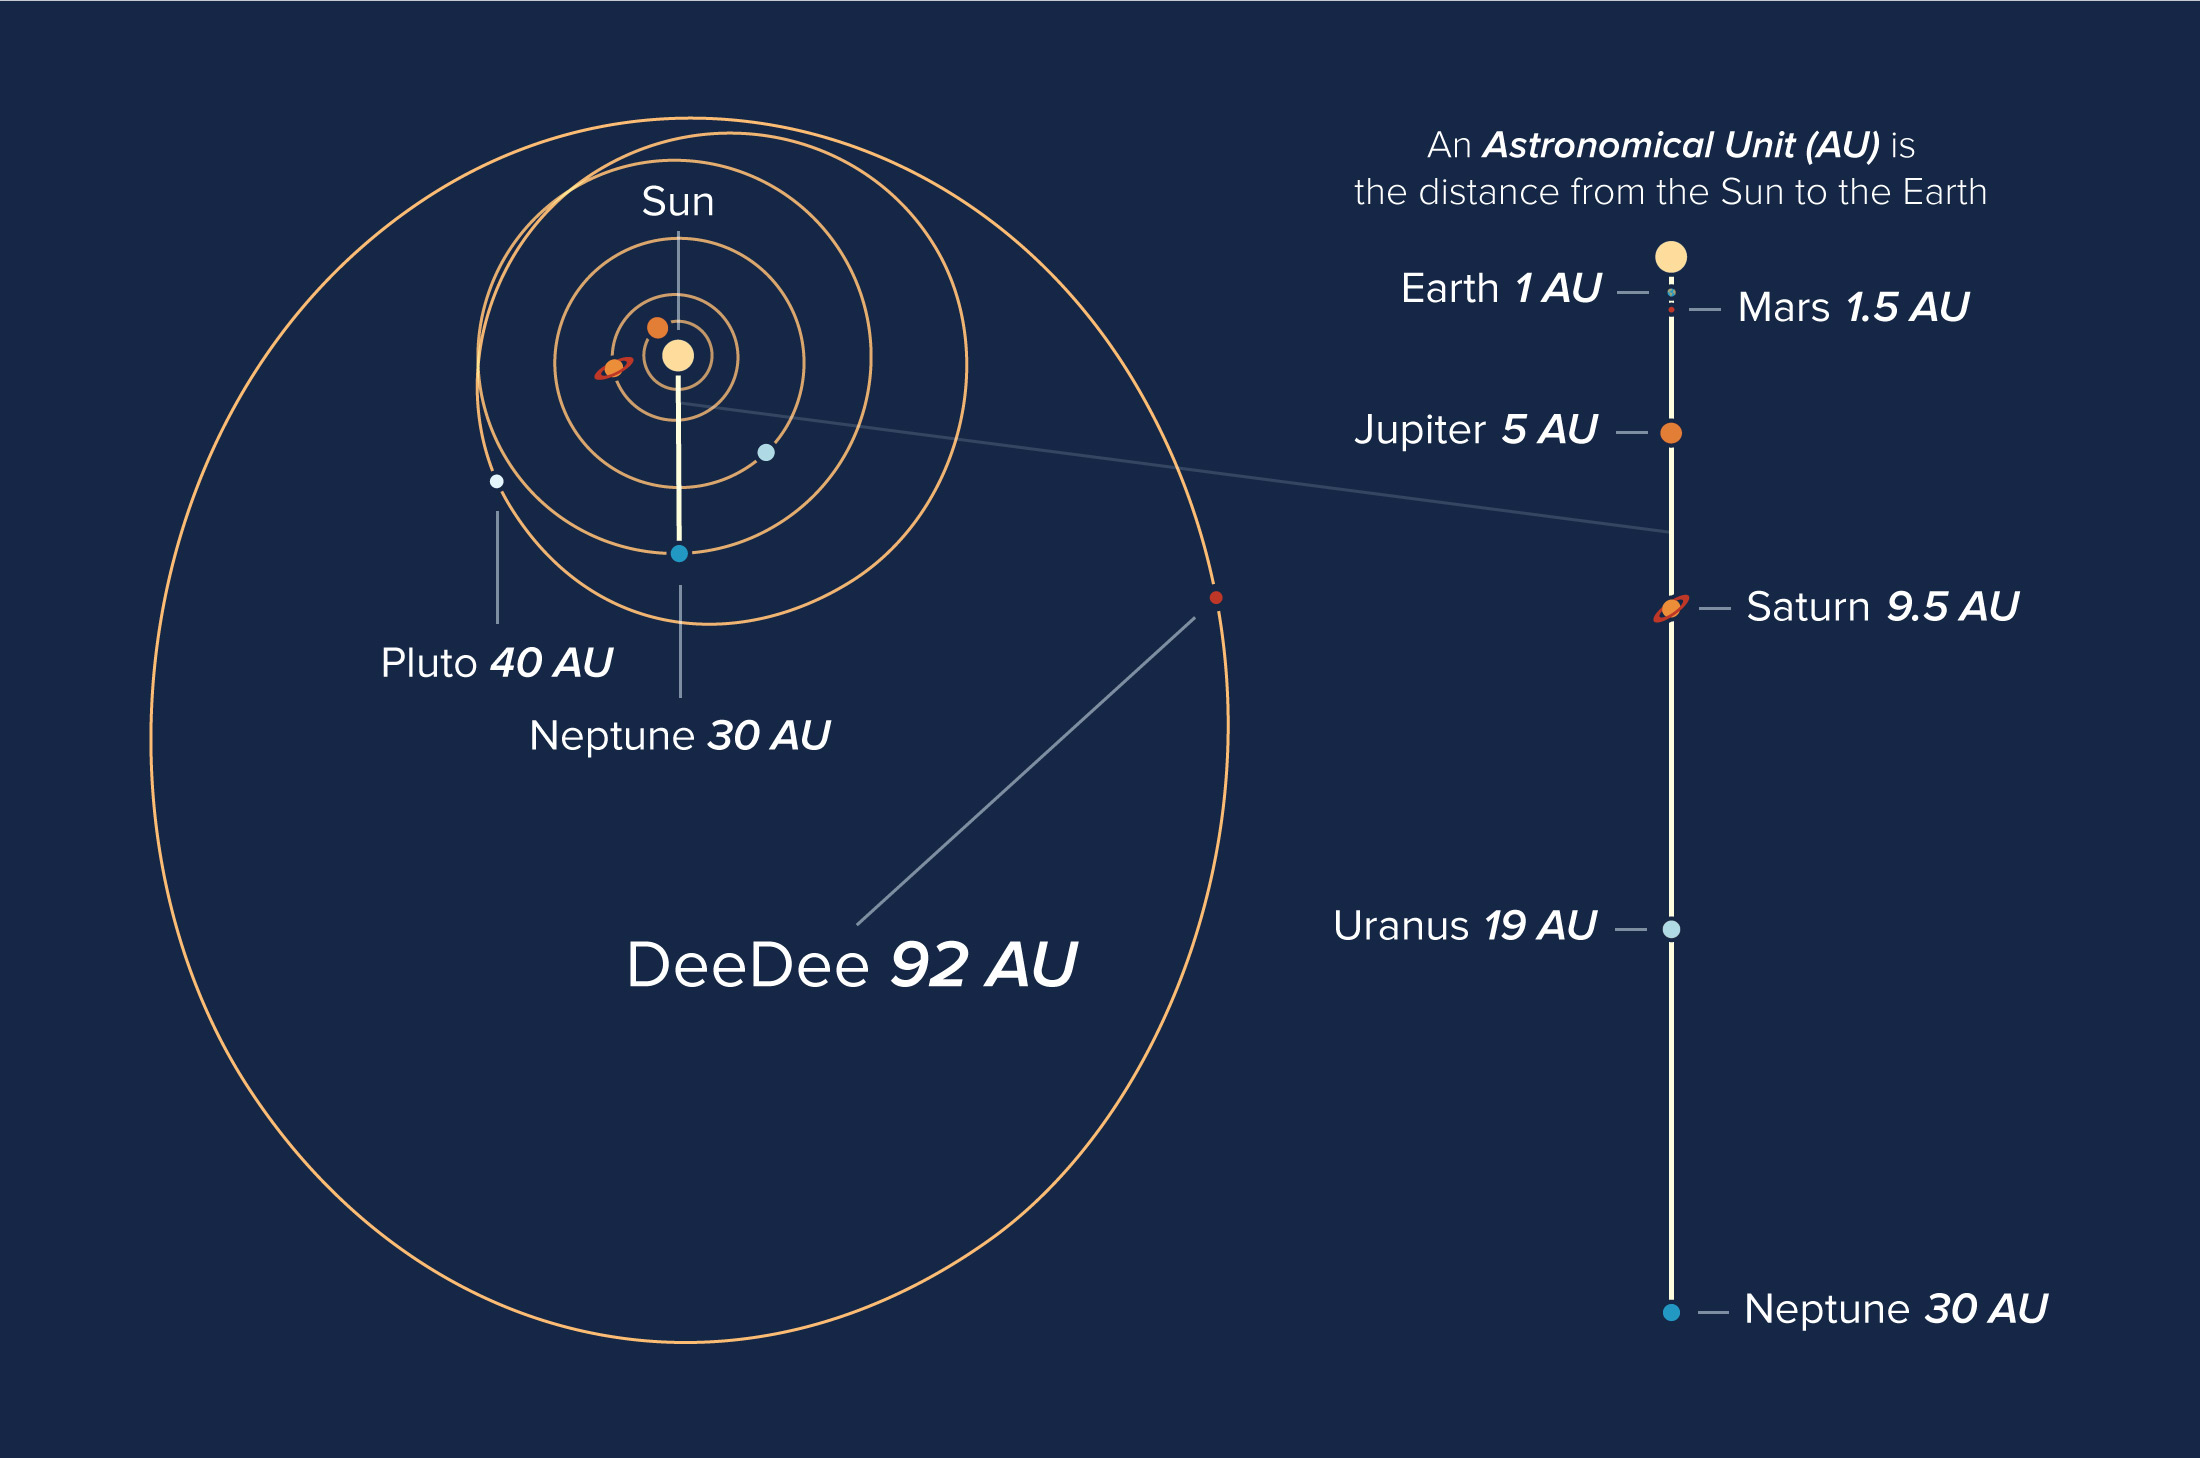 Orbits of objects in our solar system, showing the location of the planetary body 'DeeDee'.